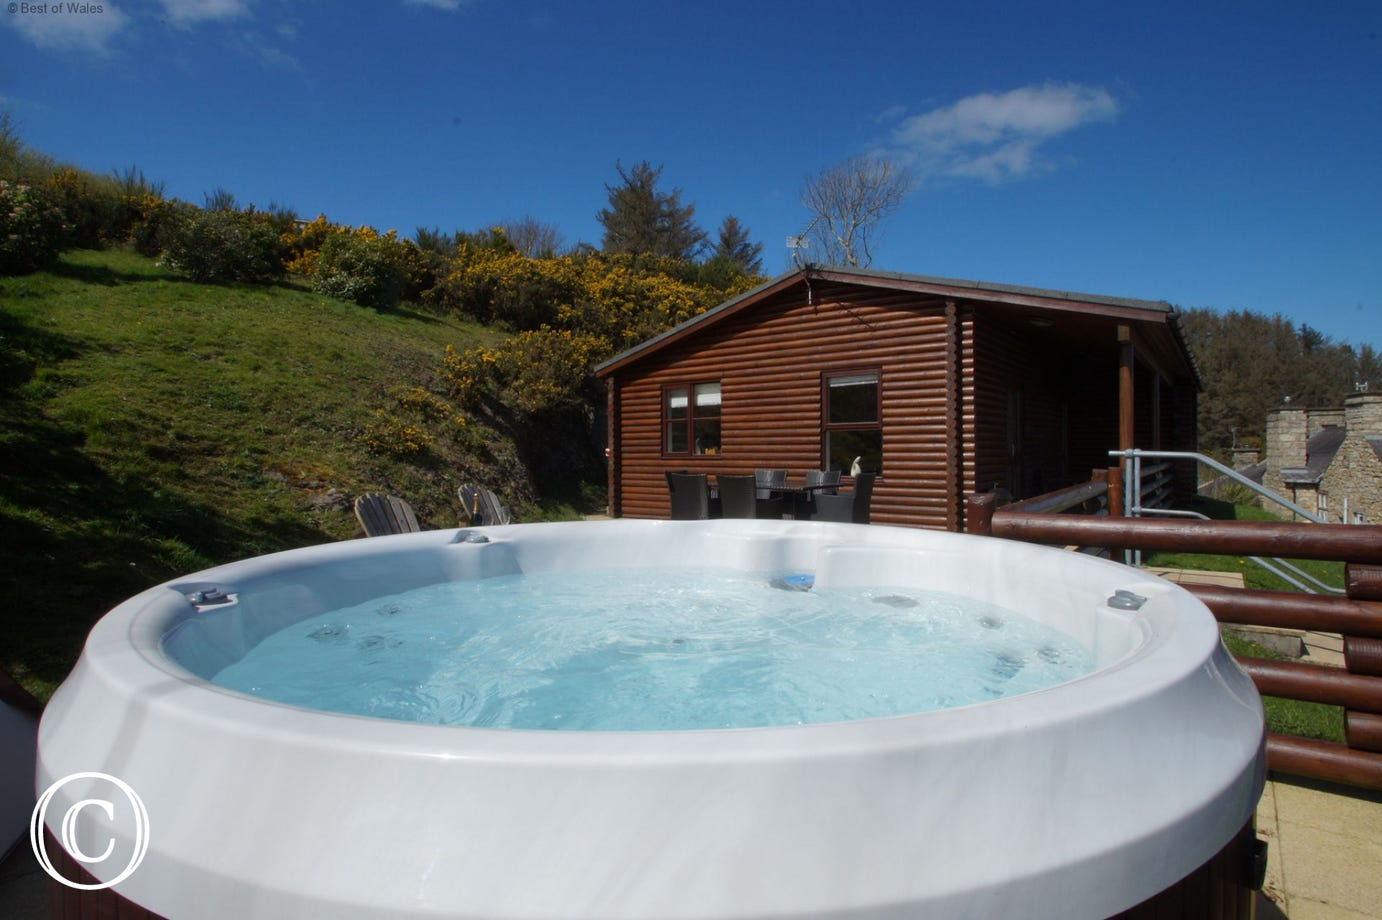 Relax for hours on the patio at Gorwel Log Cabin North Wales